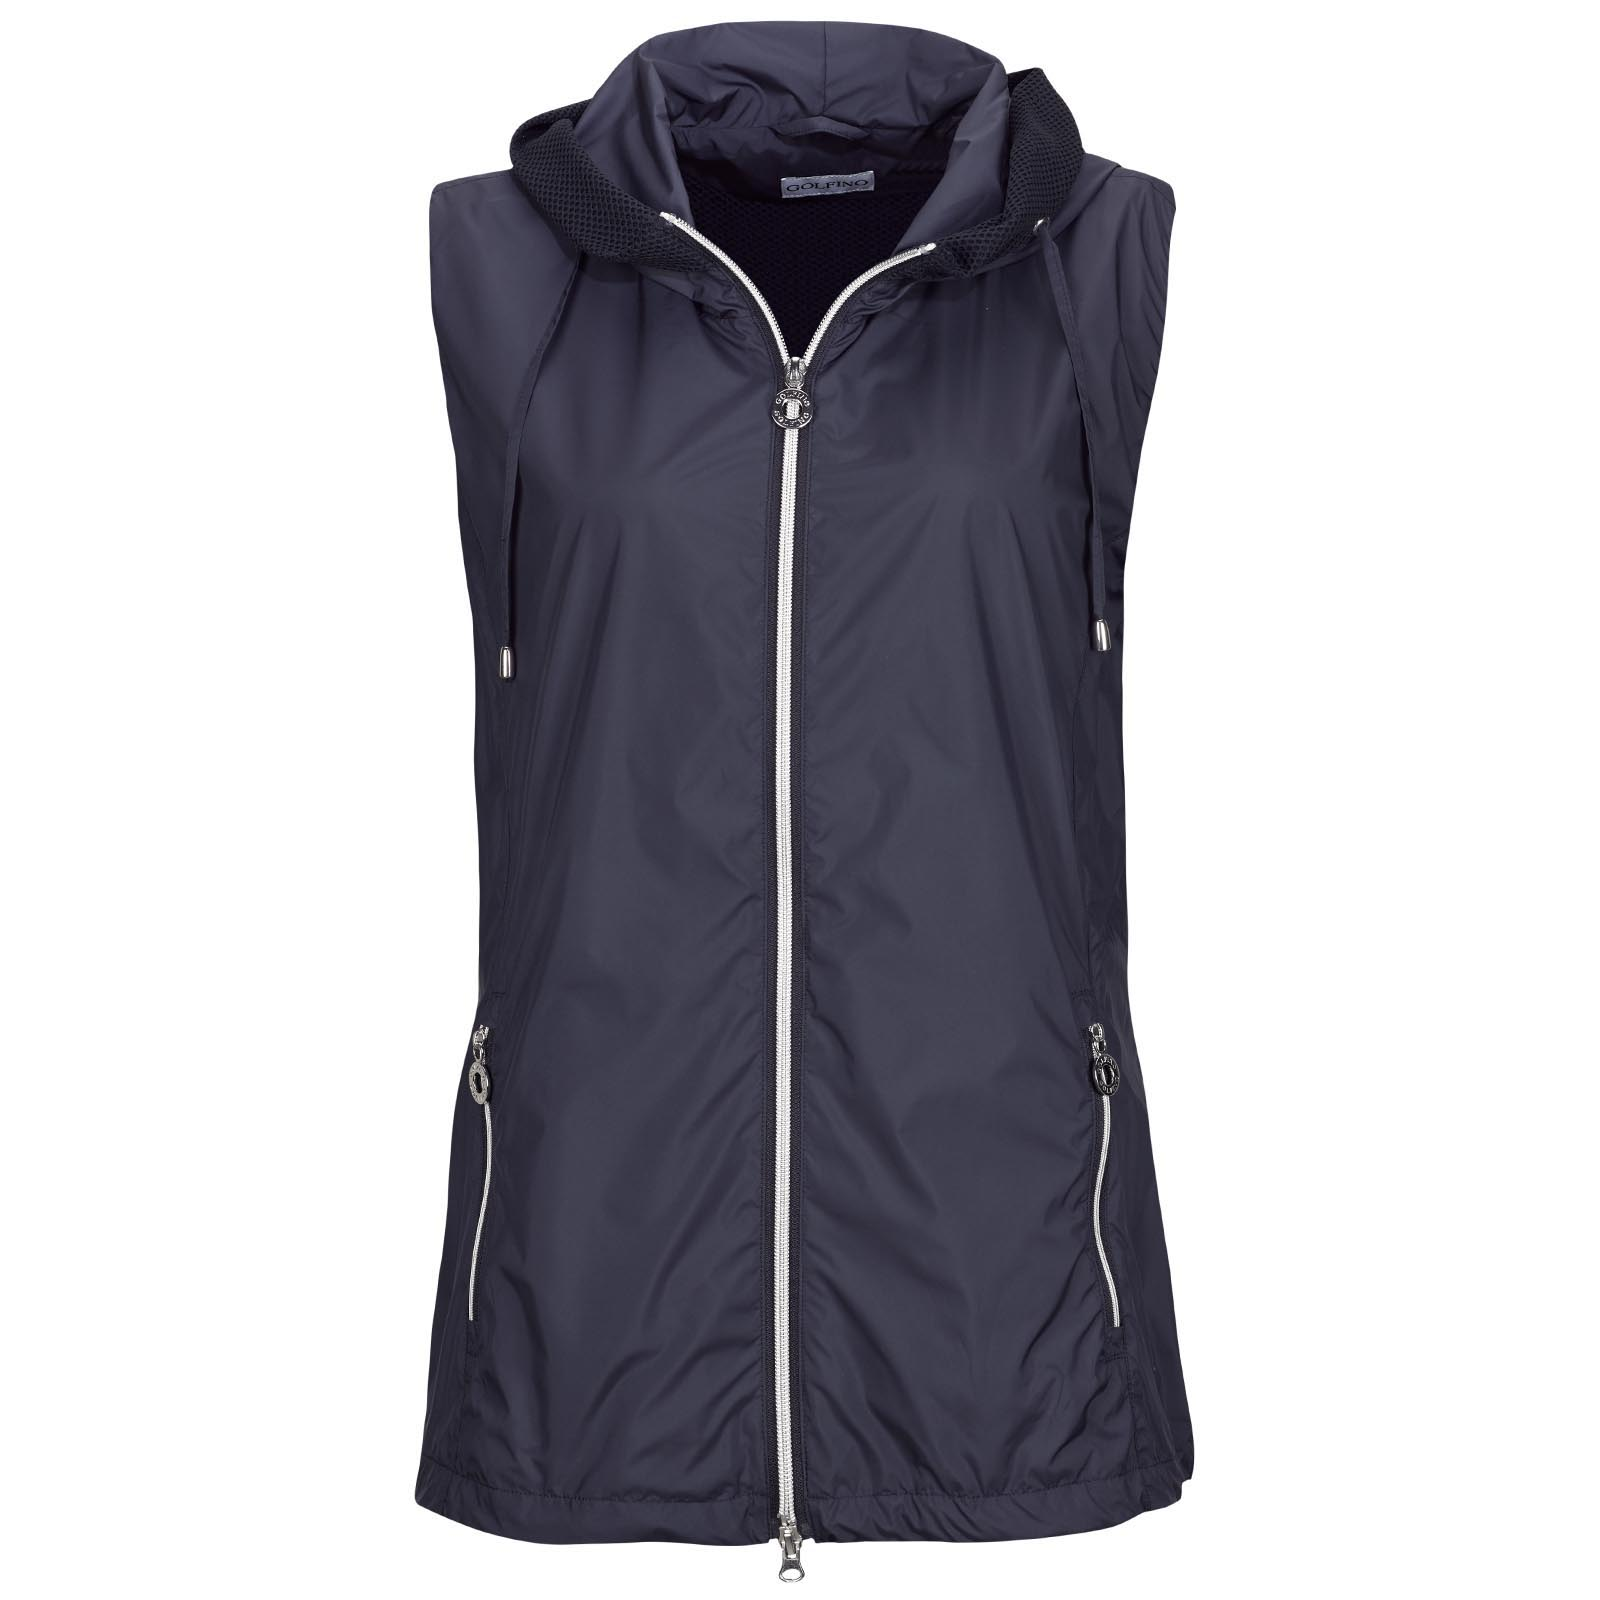 Ladies' Ultralight Wind Protection golf waistcoat with hood